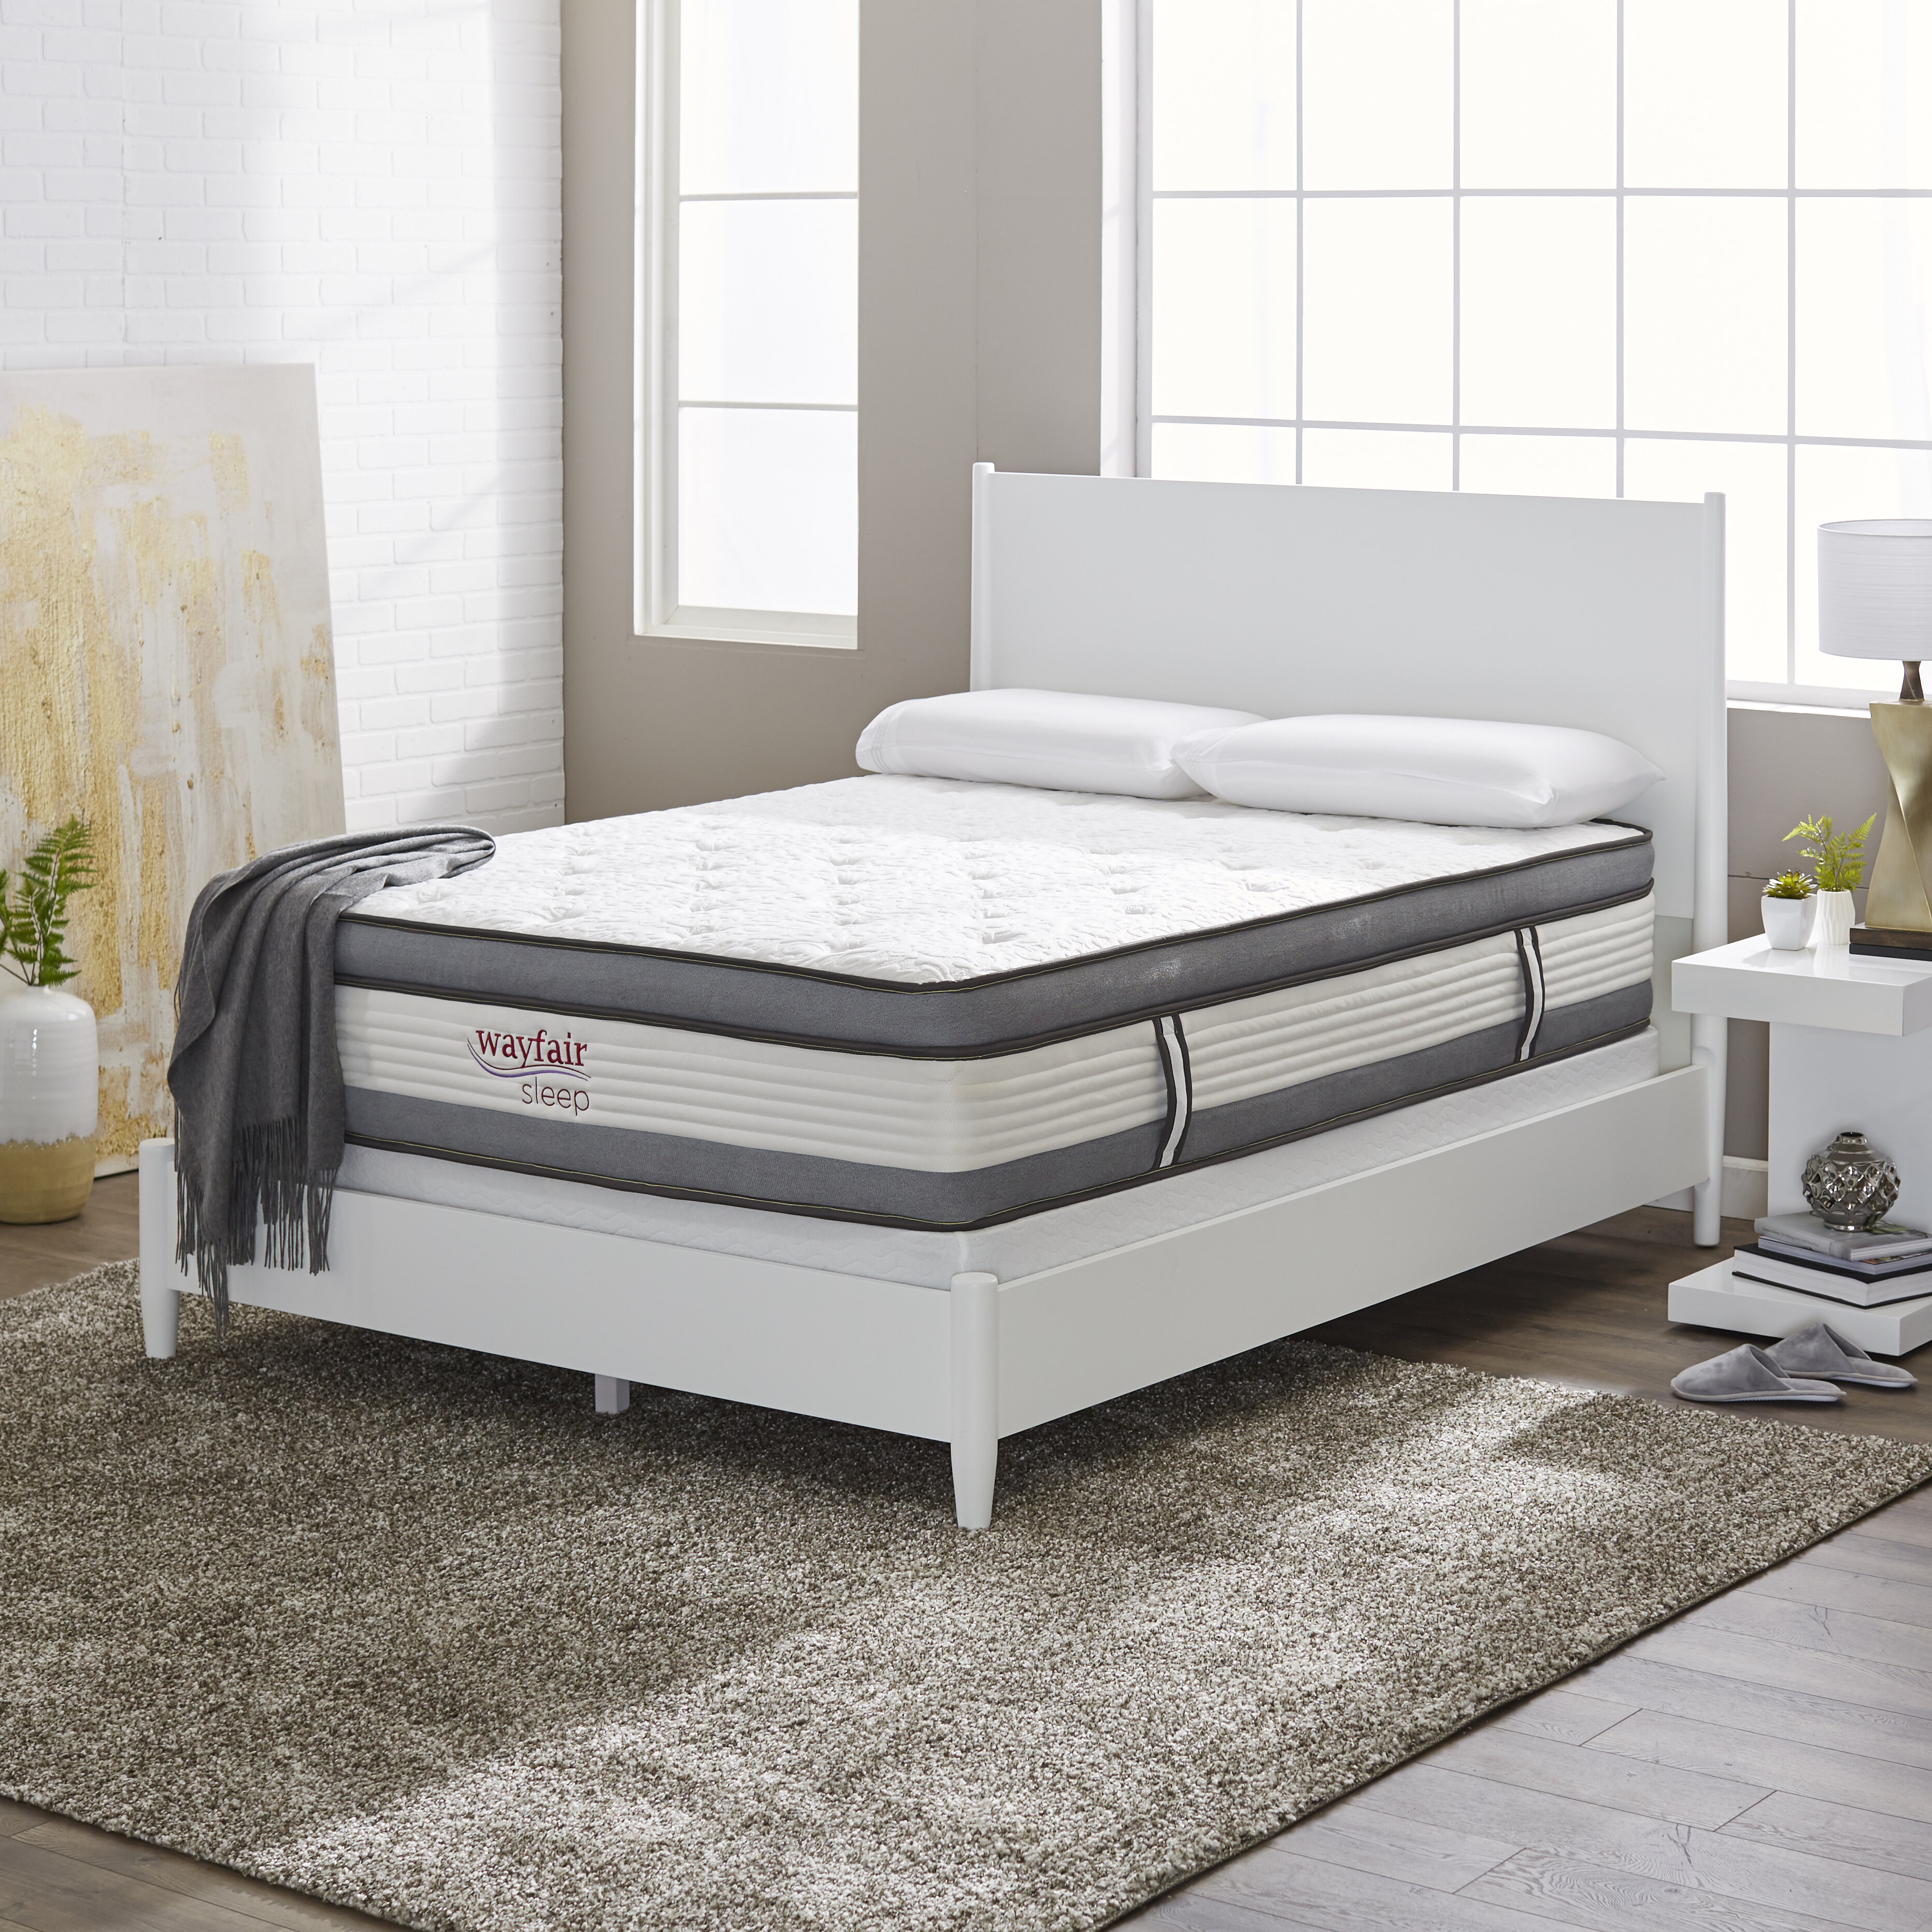 near wonderful pleasurable store firm alluring inch tags medium mattress kingsdown profile online the stores attractive cheap height or me plucky feel tag order mail